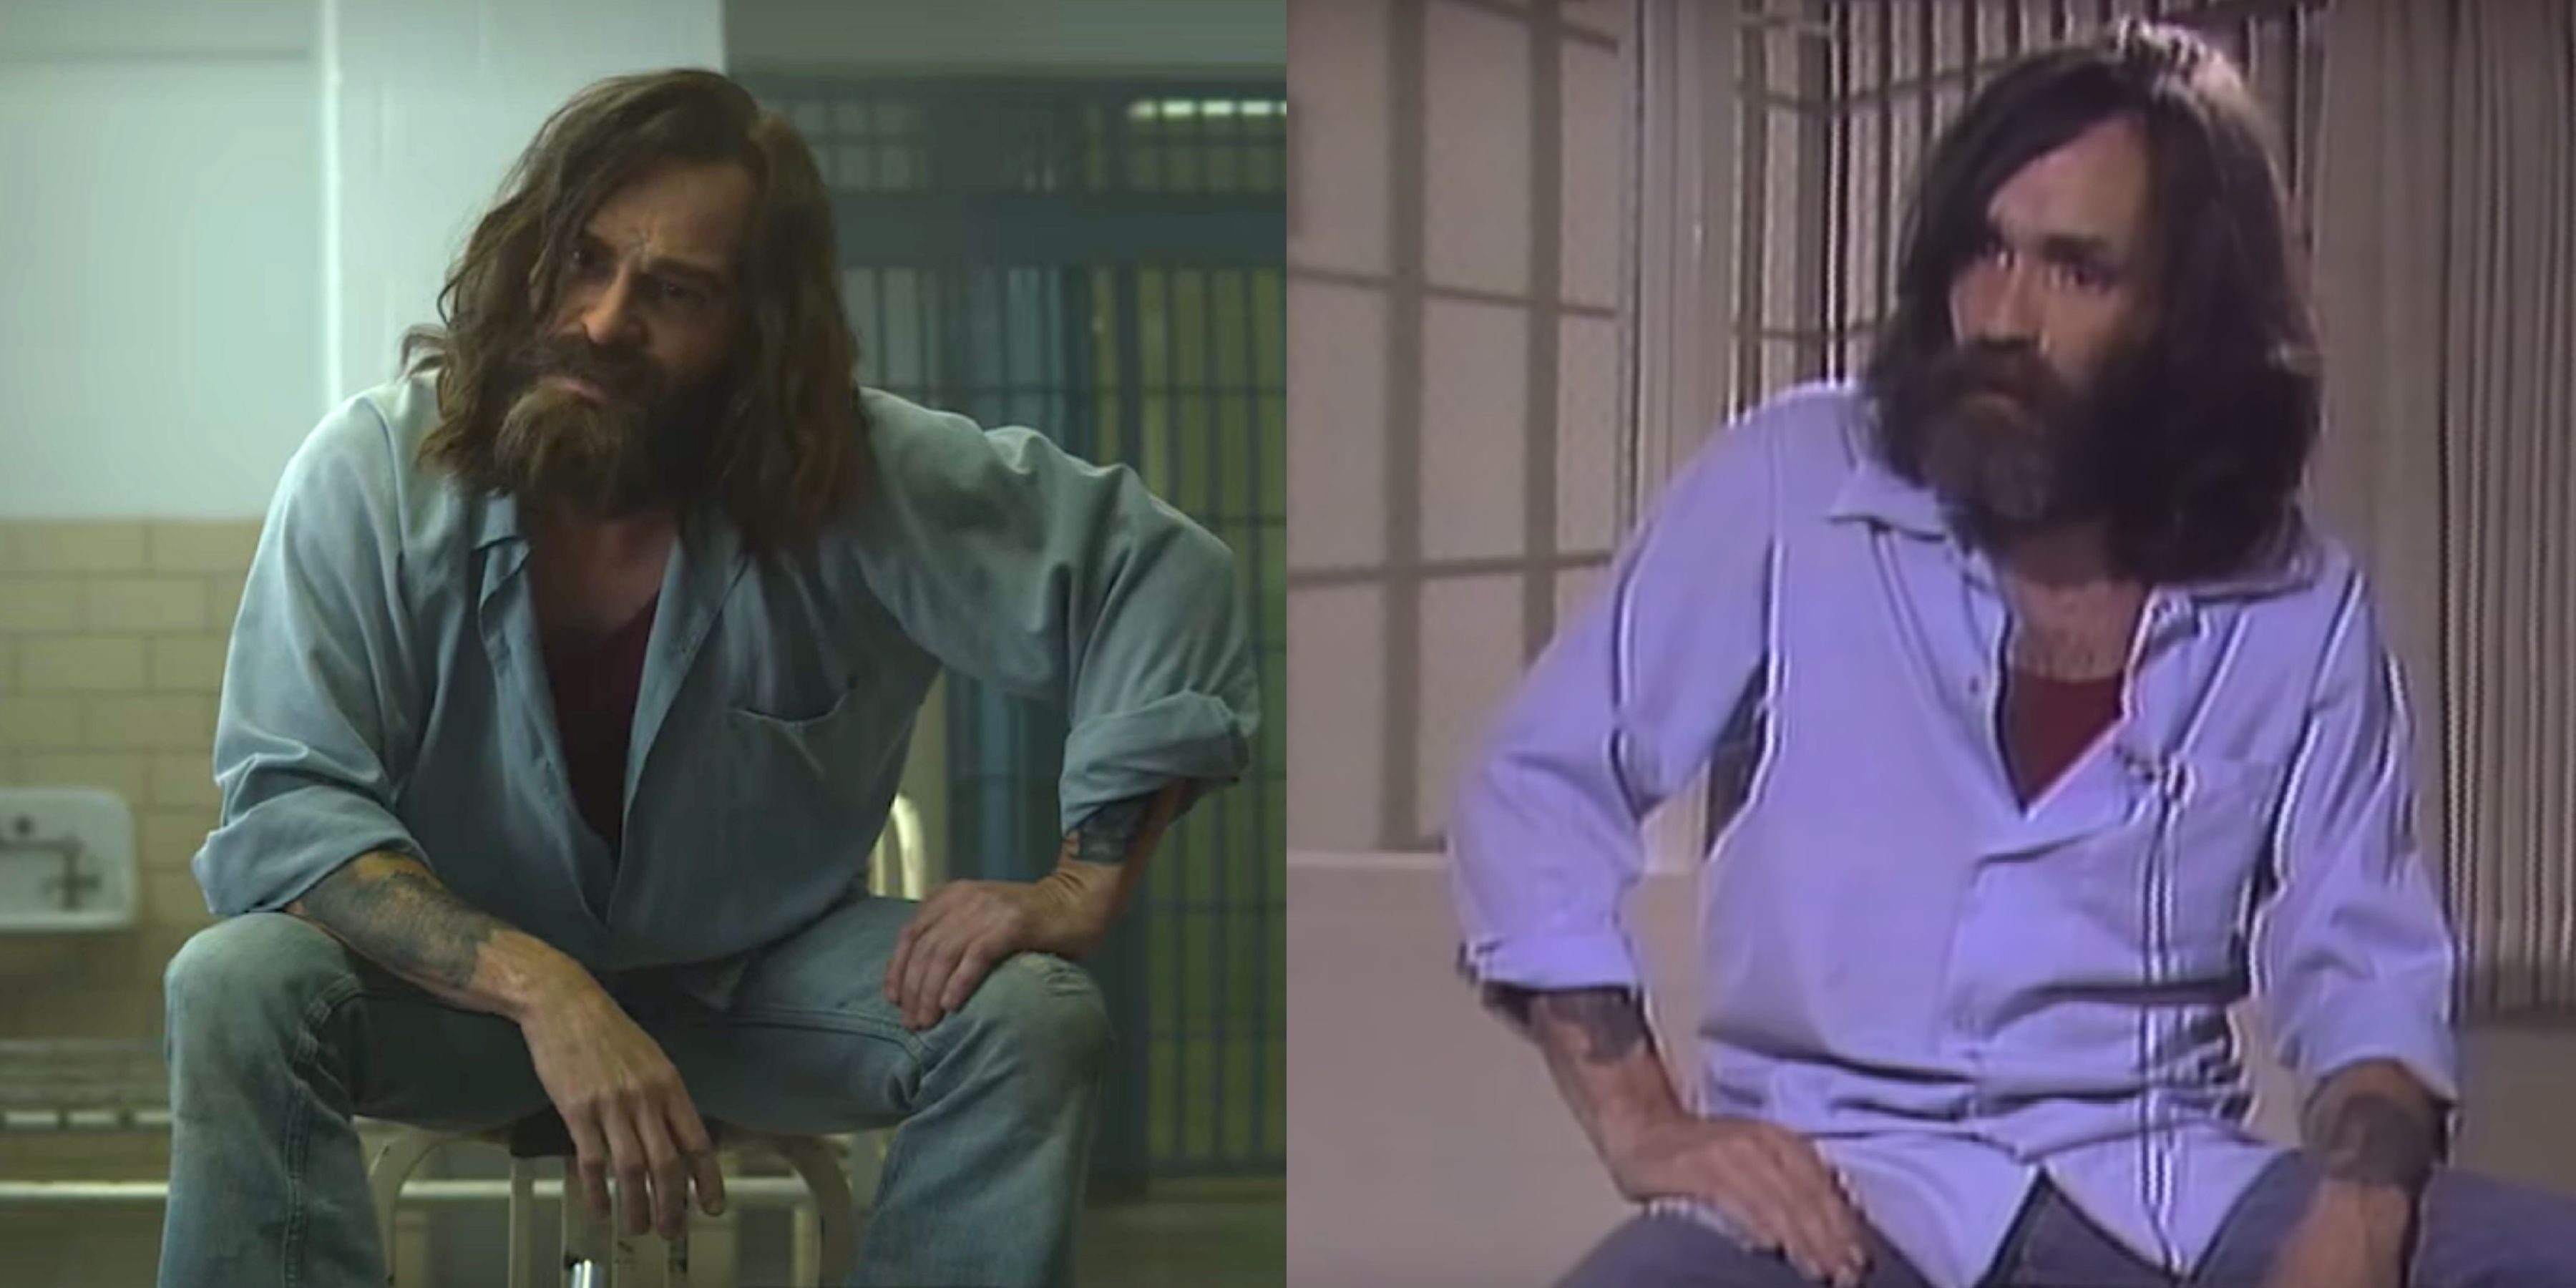 Mindhunter Charles Manson Scene Is Side By Side With Real Manson Interview In New Video